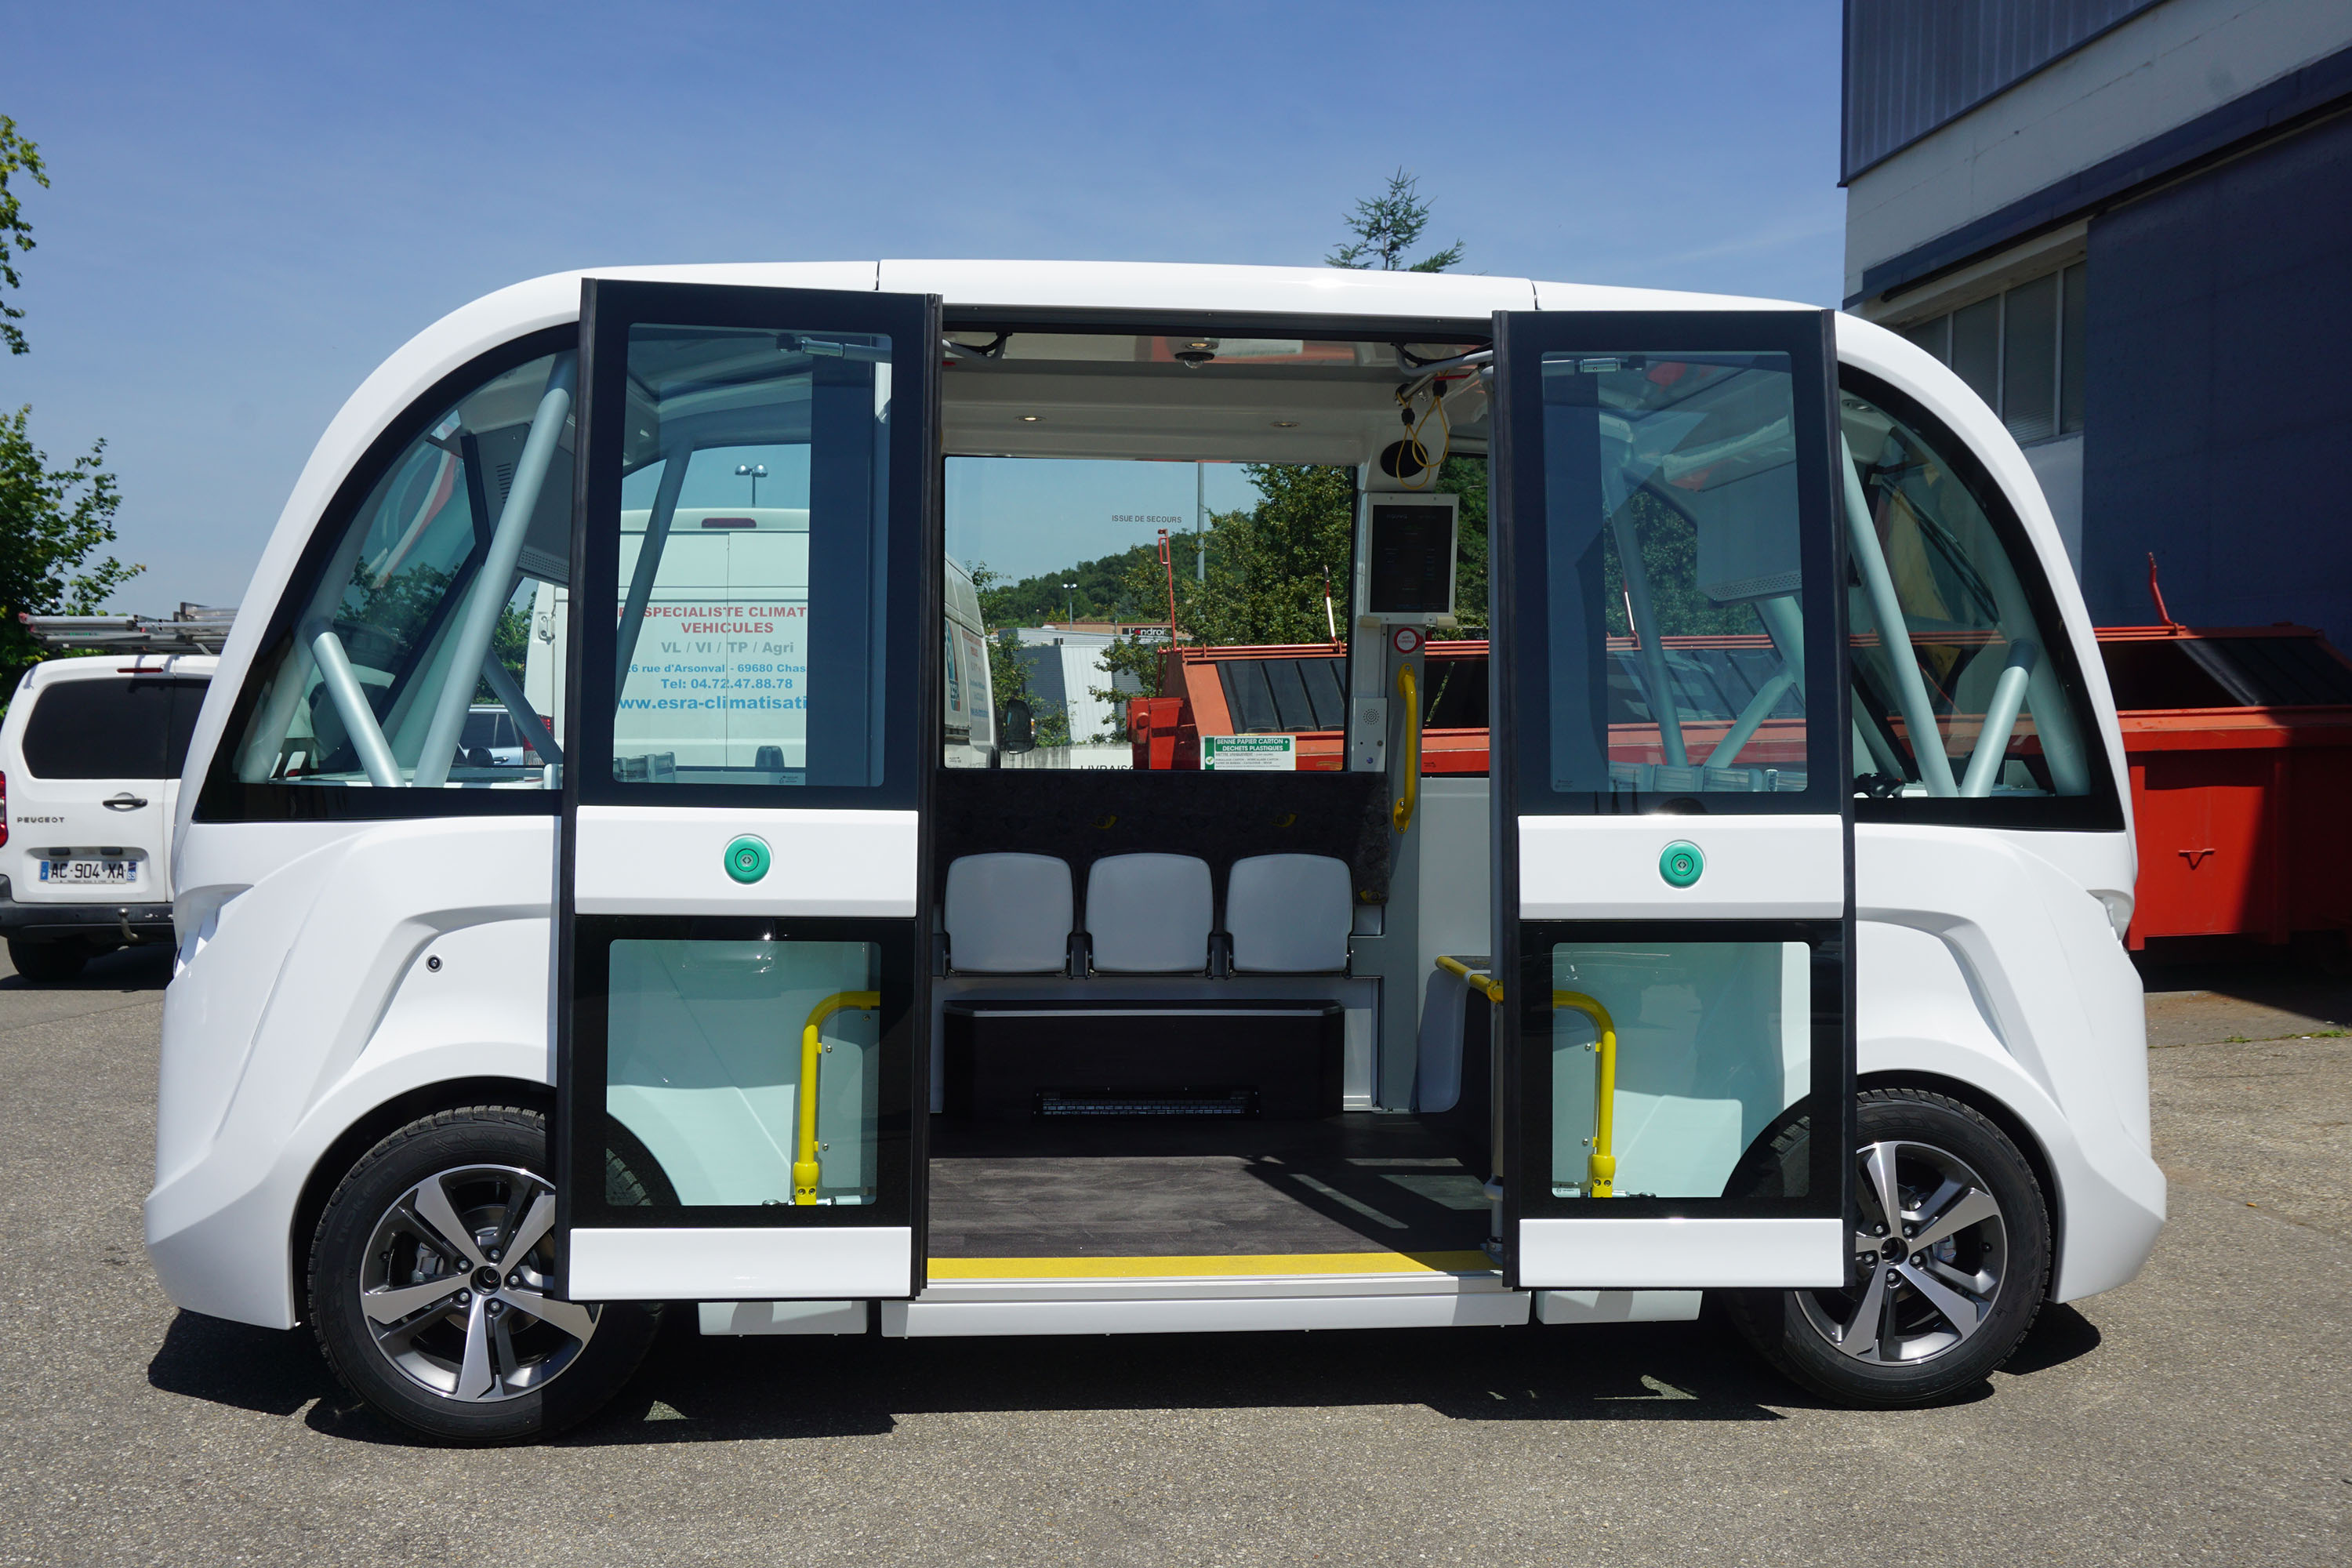 Do You Know Where Your Car Is Madisons >> Unique Driverless Vehicle On Display Nov 15 18 In Madison